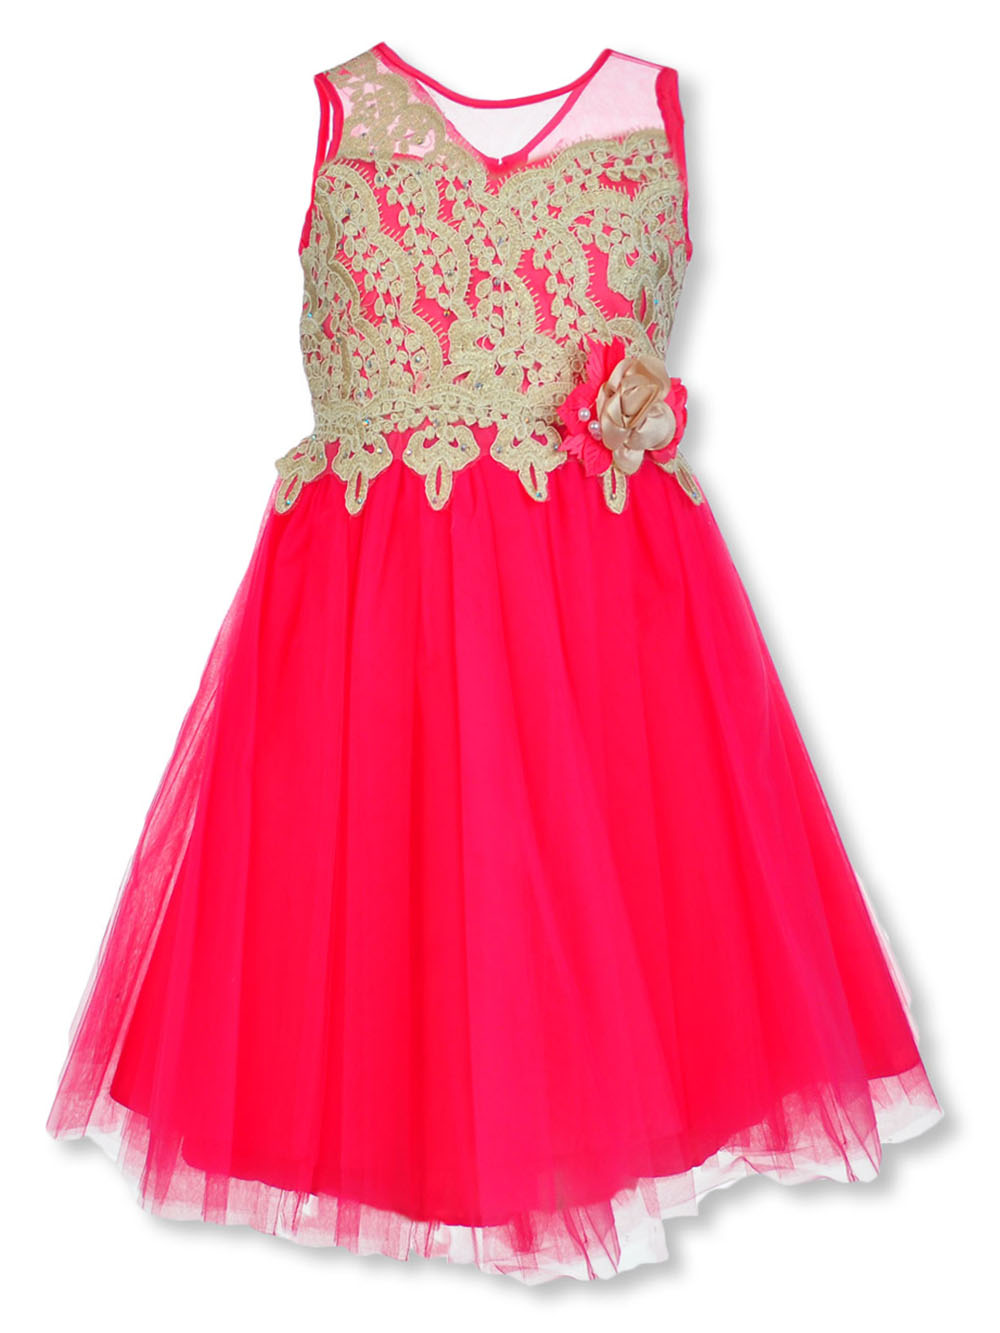 Size 6 Special Occasion Dresses for Girls